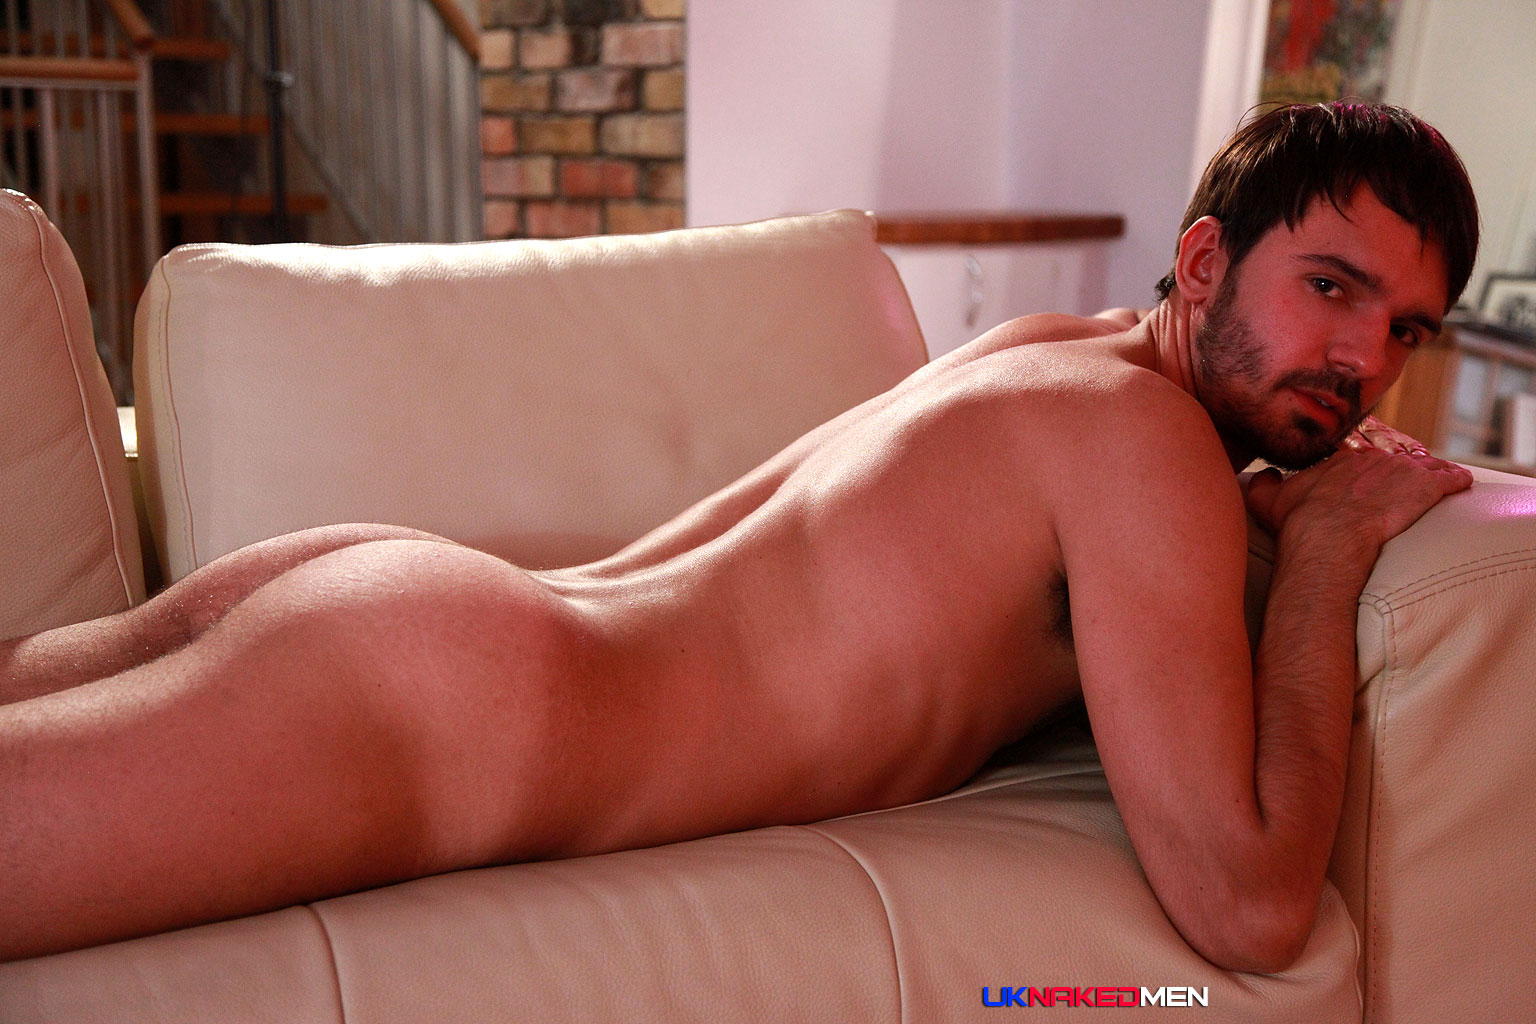 Hairy Guy Bruno Balls Jerks His Uncut Cock - Hairy Guys In Gay Porn-8445